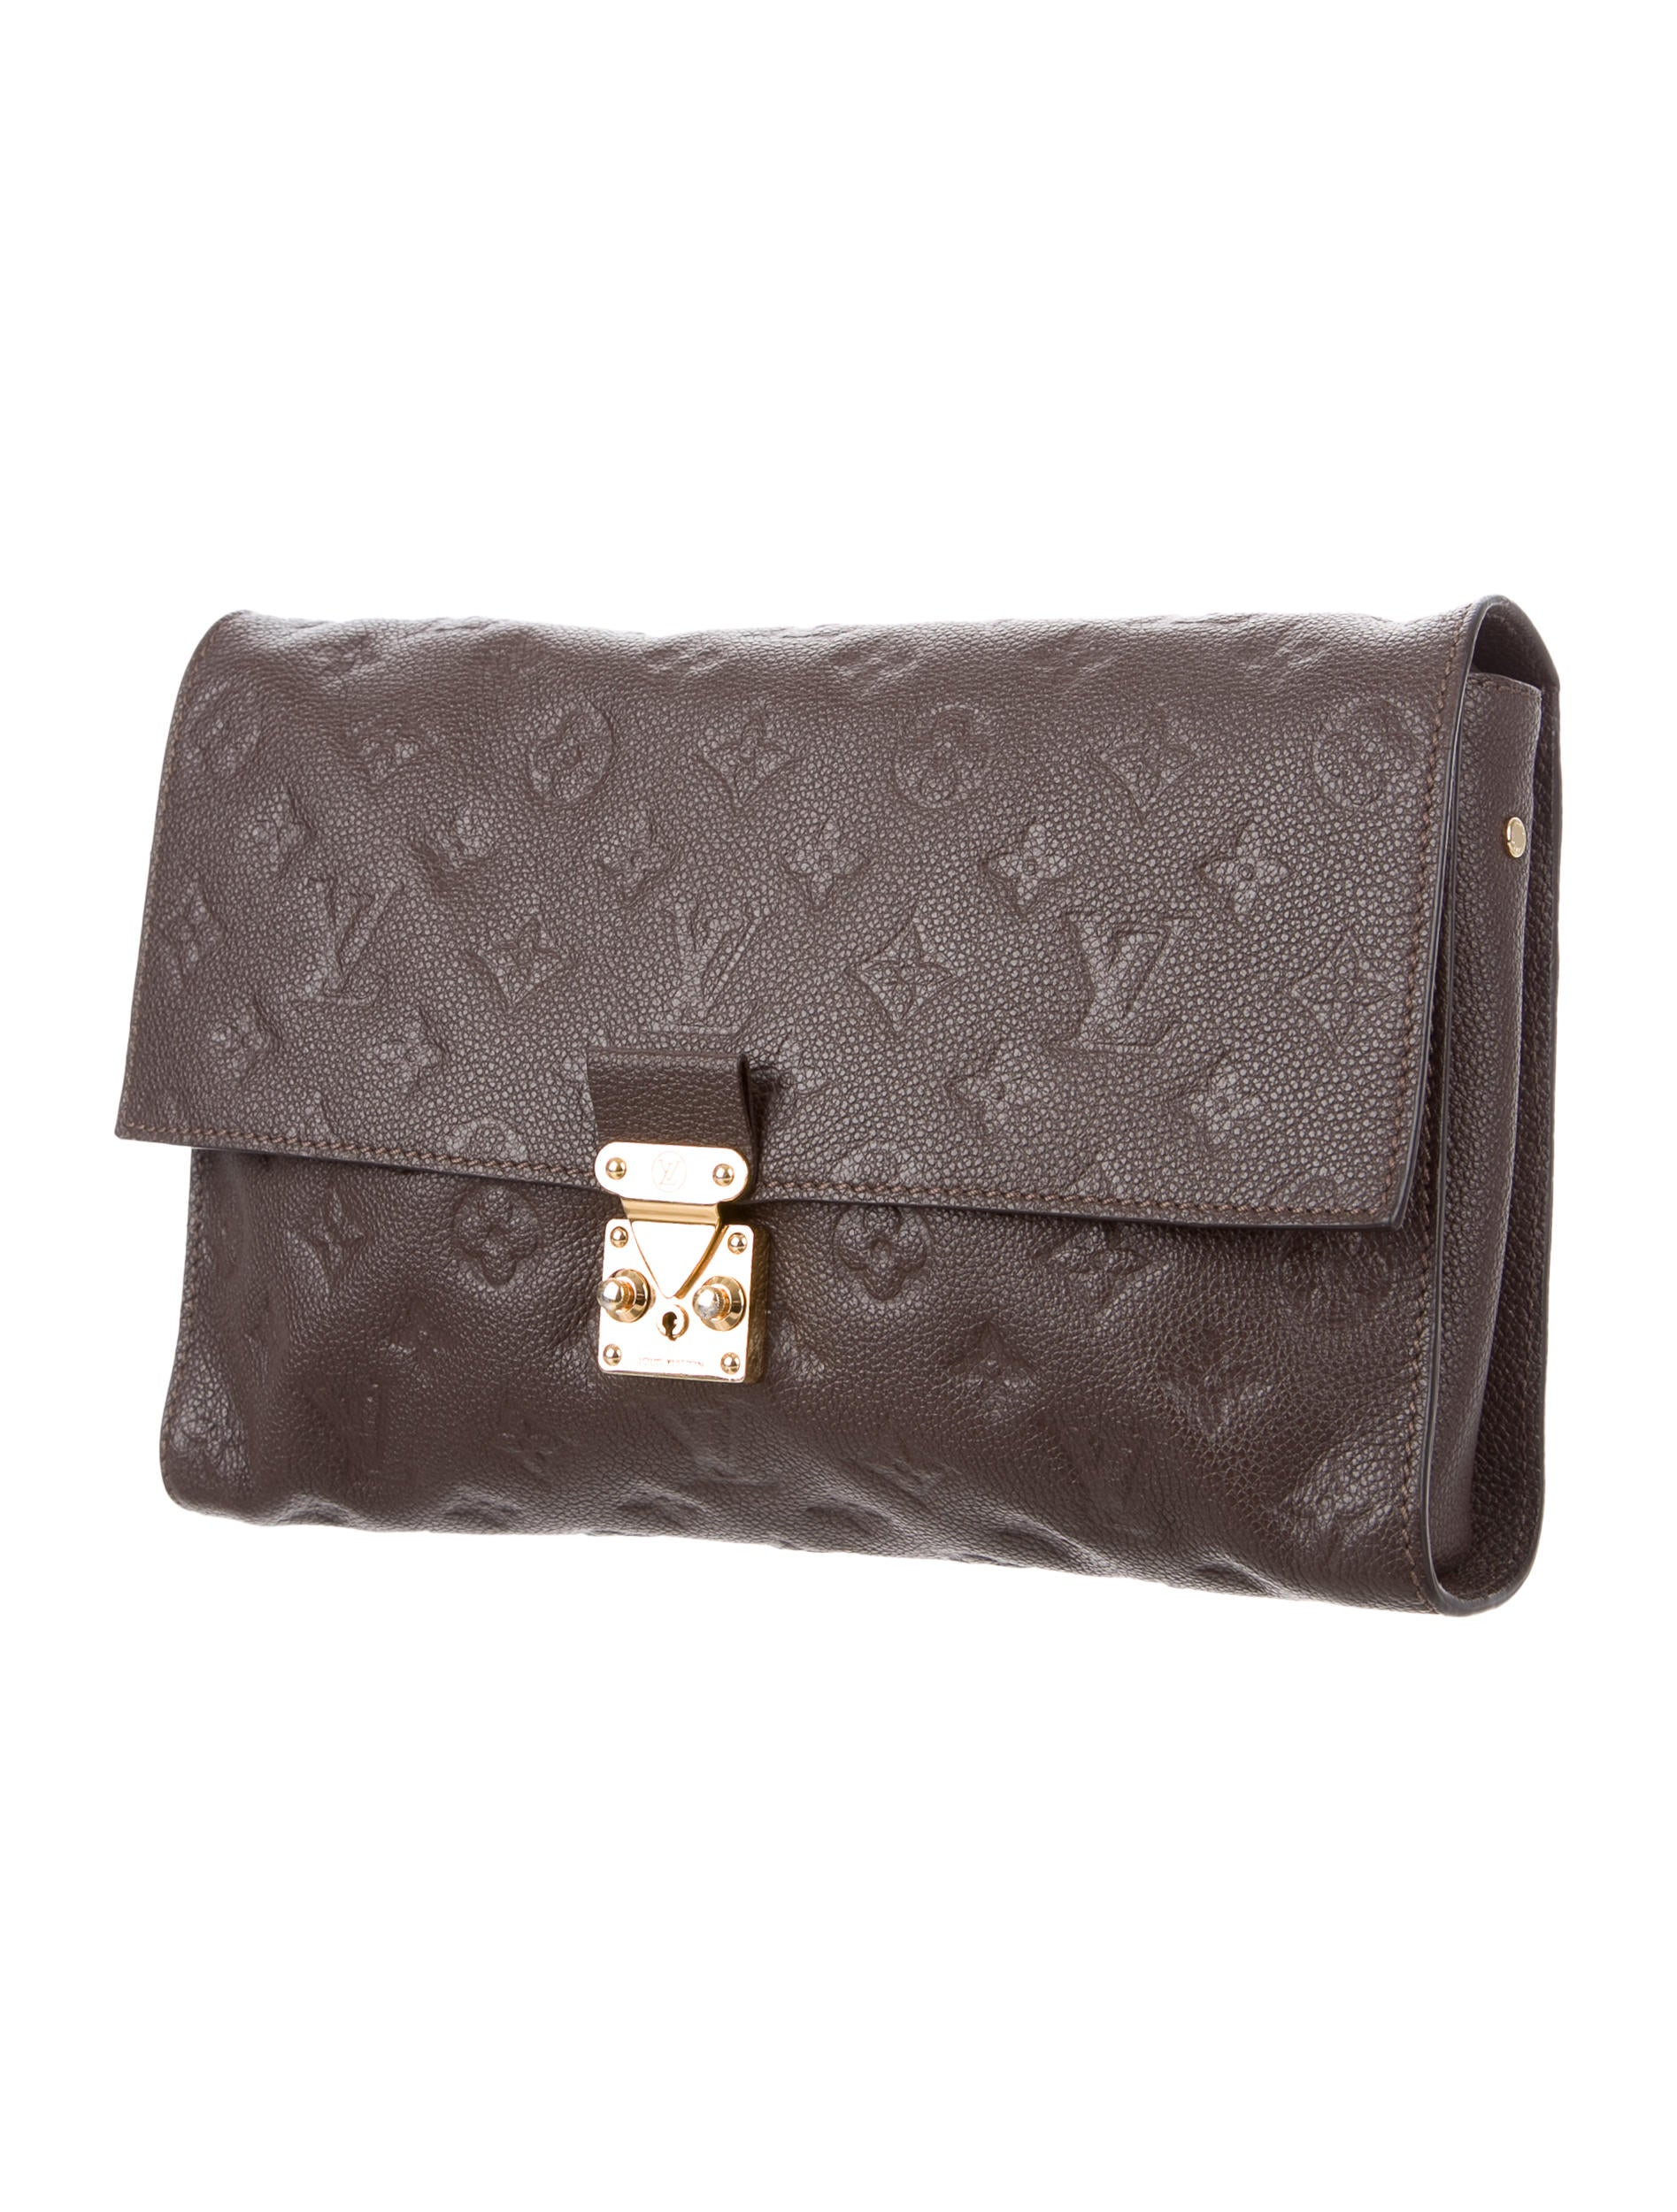 Louis Vuitton Empreinte Fascinante Bag - Handbags - LOU110042  61031eac7aff3